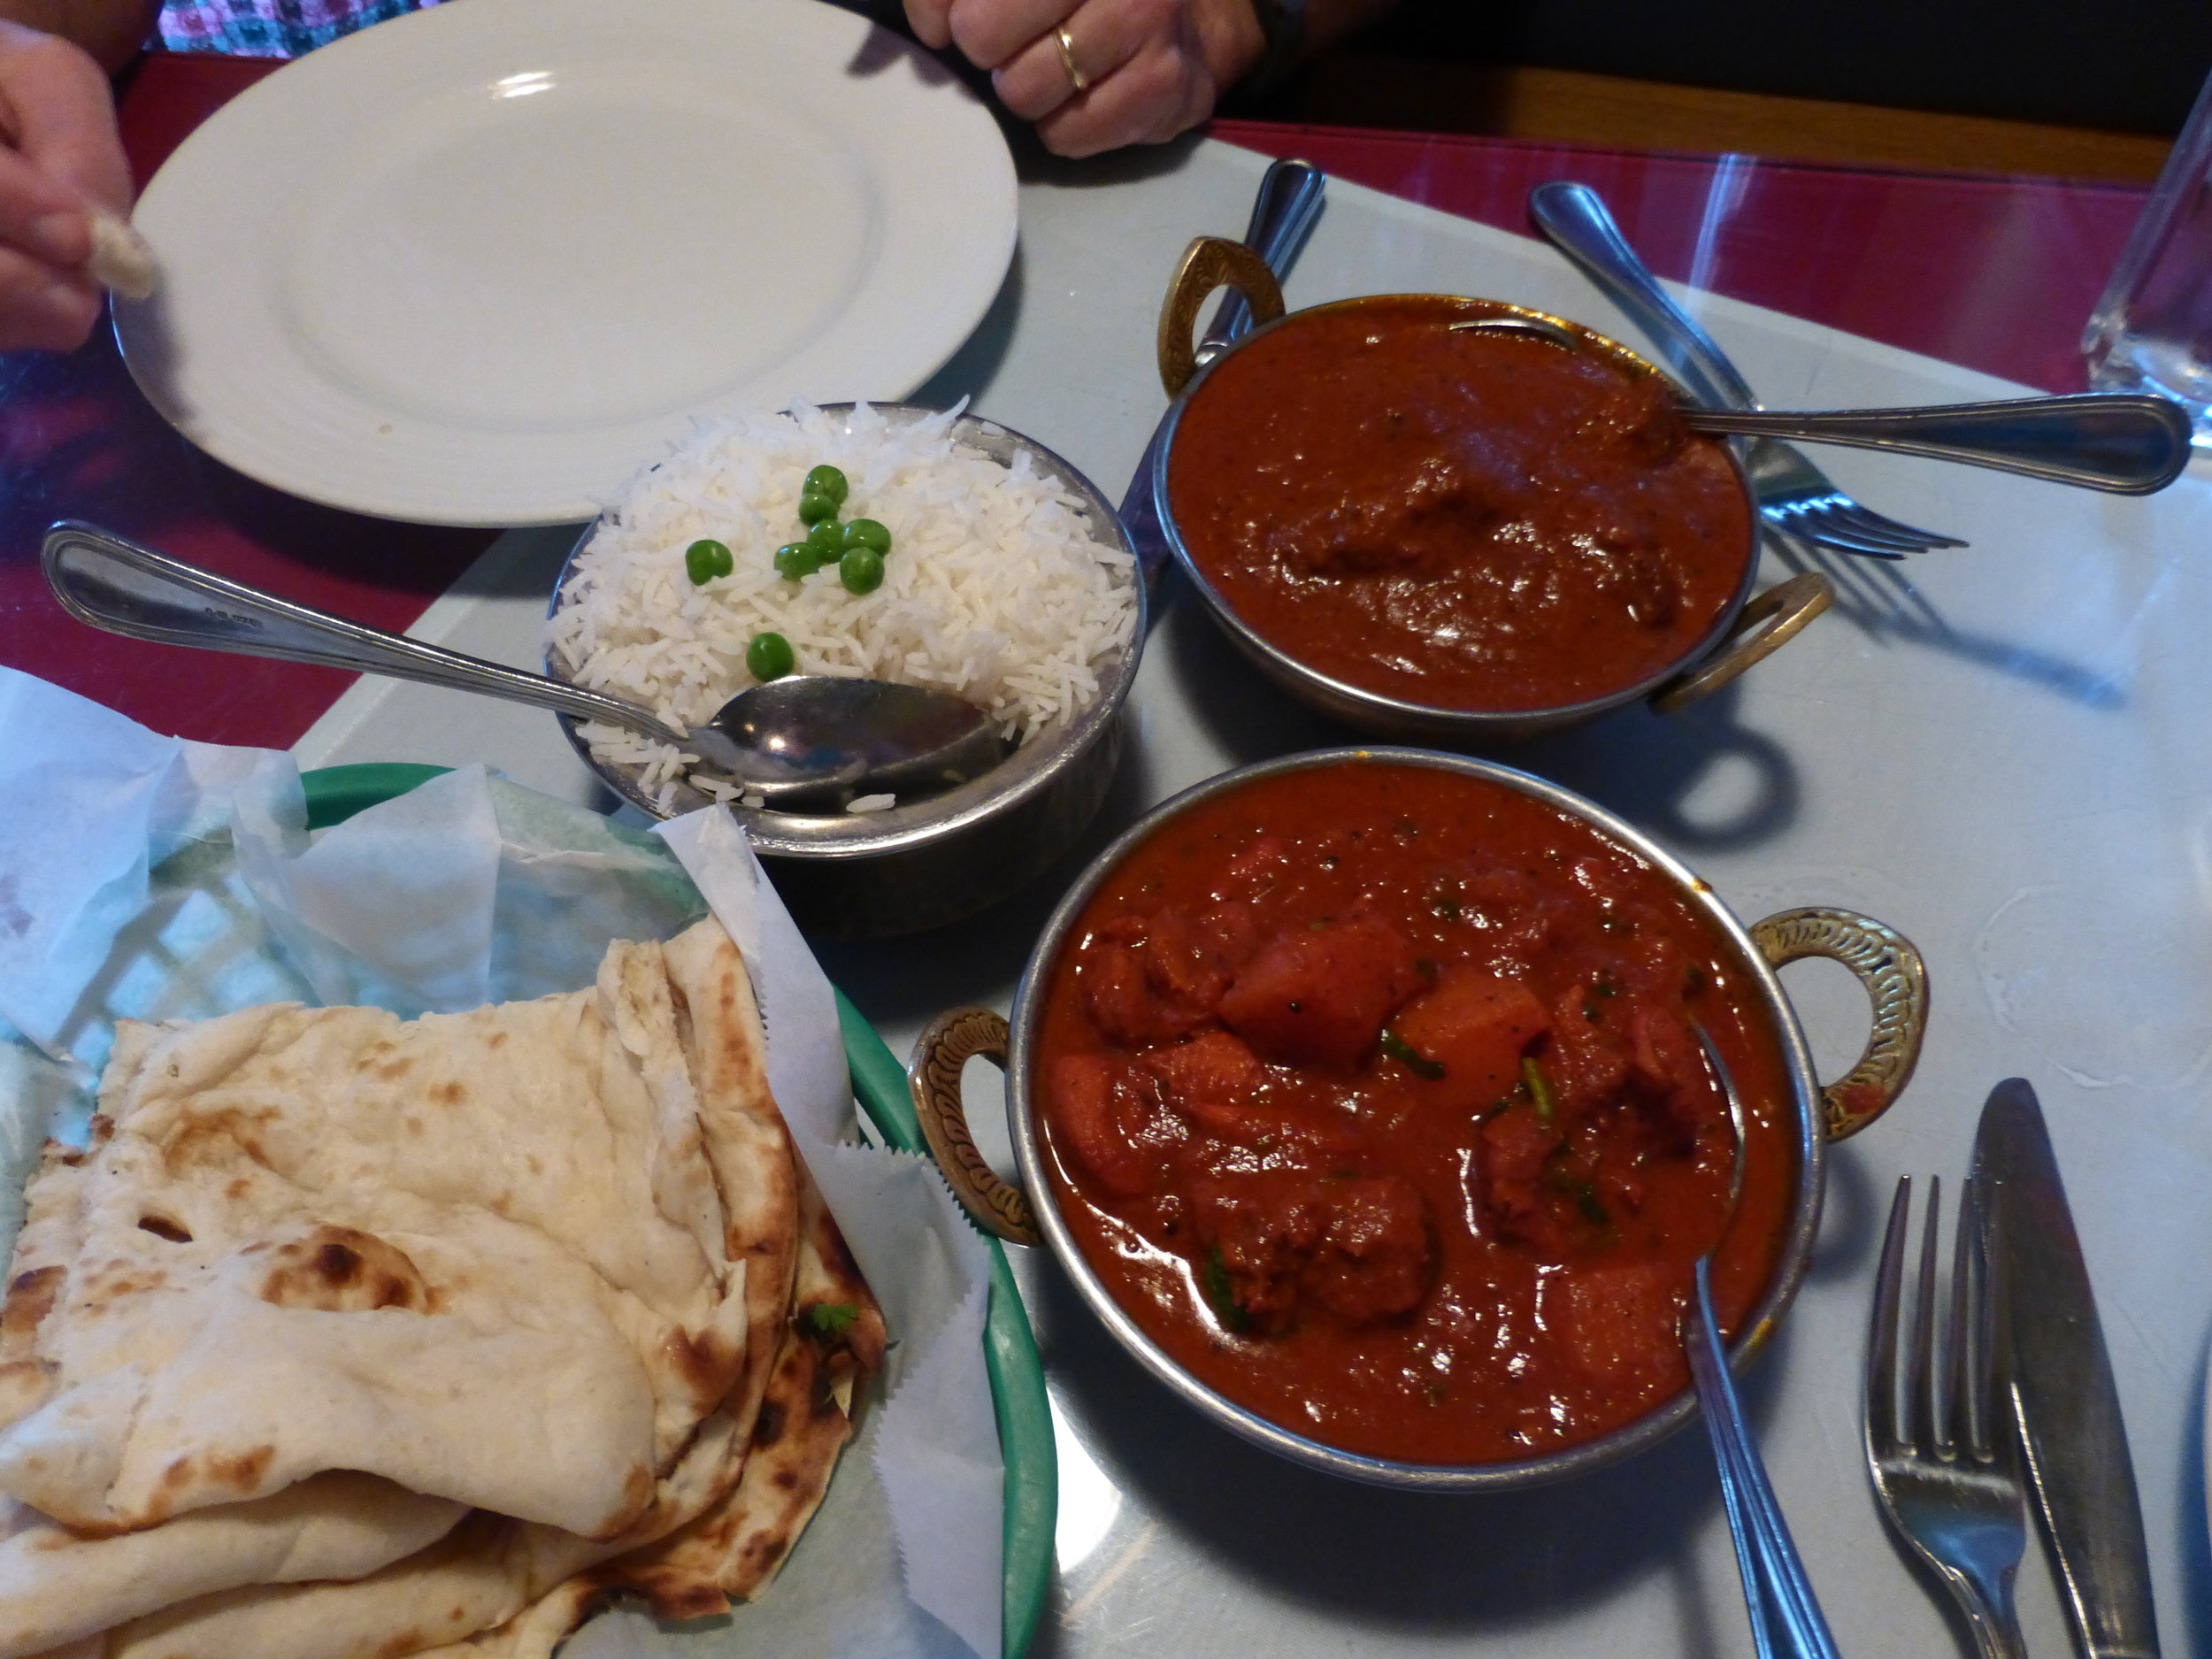 I should have written down what these dishes are called. Chicken with vegetables in a sauce. Served with naan bread or steamed rice. Yummy!